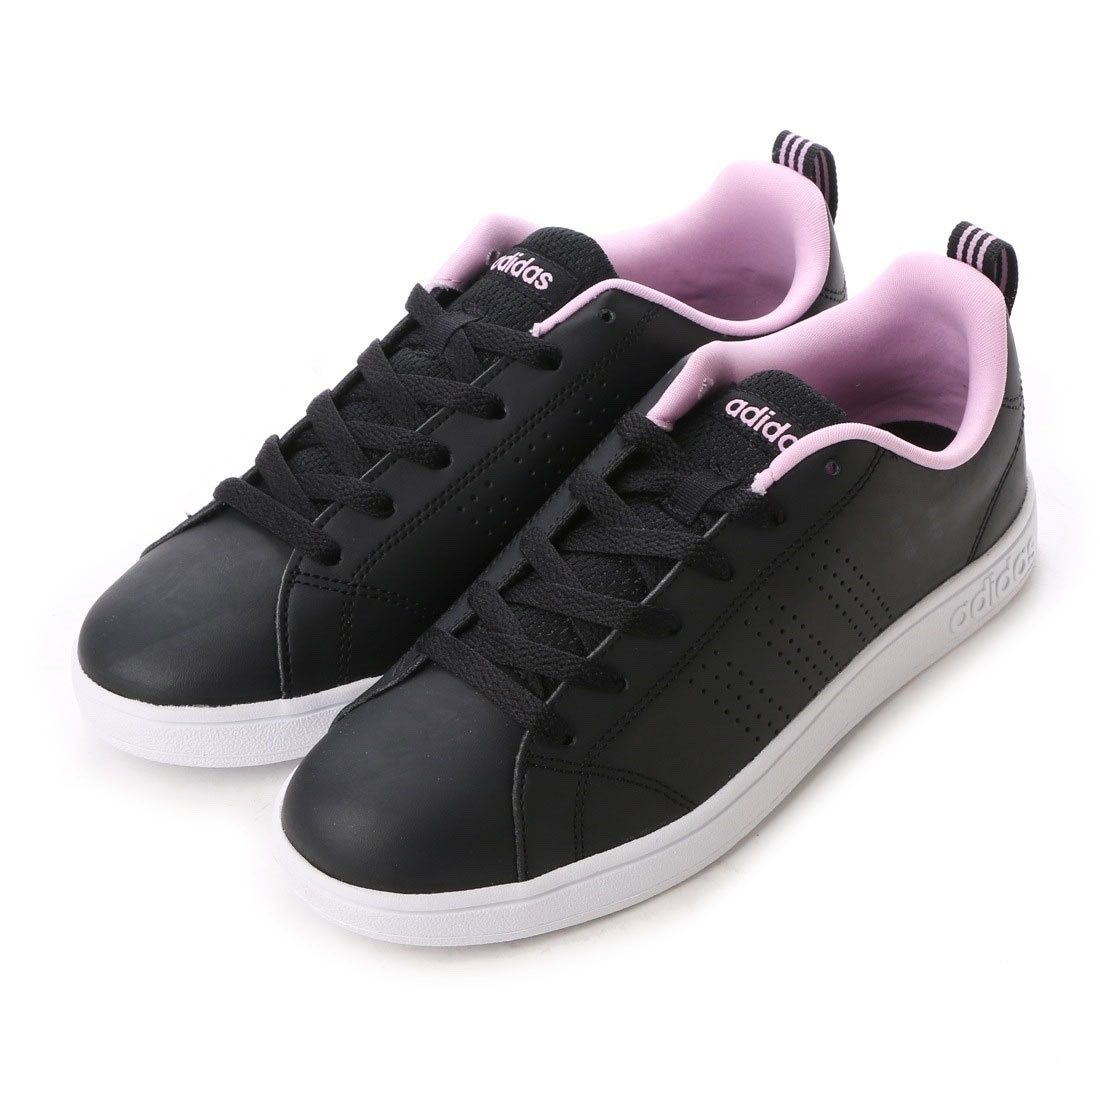 hot sale online a23e0 b446f adidas neo advantage clean negro mujer b74576 look trendy. Cargando zoom.